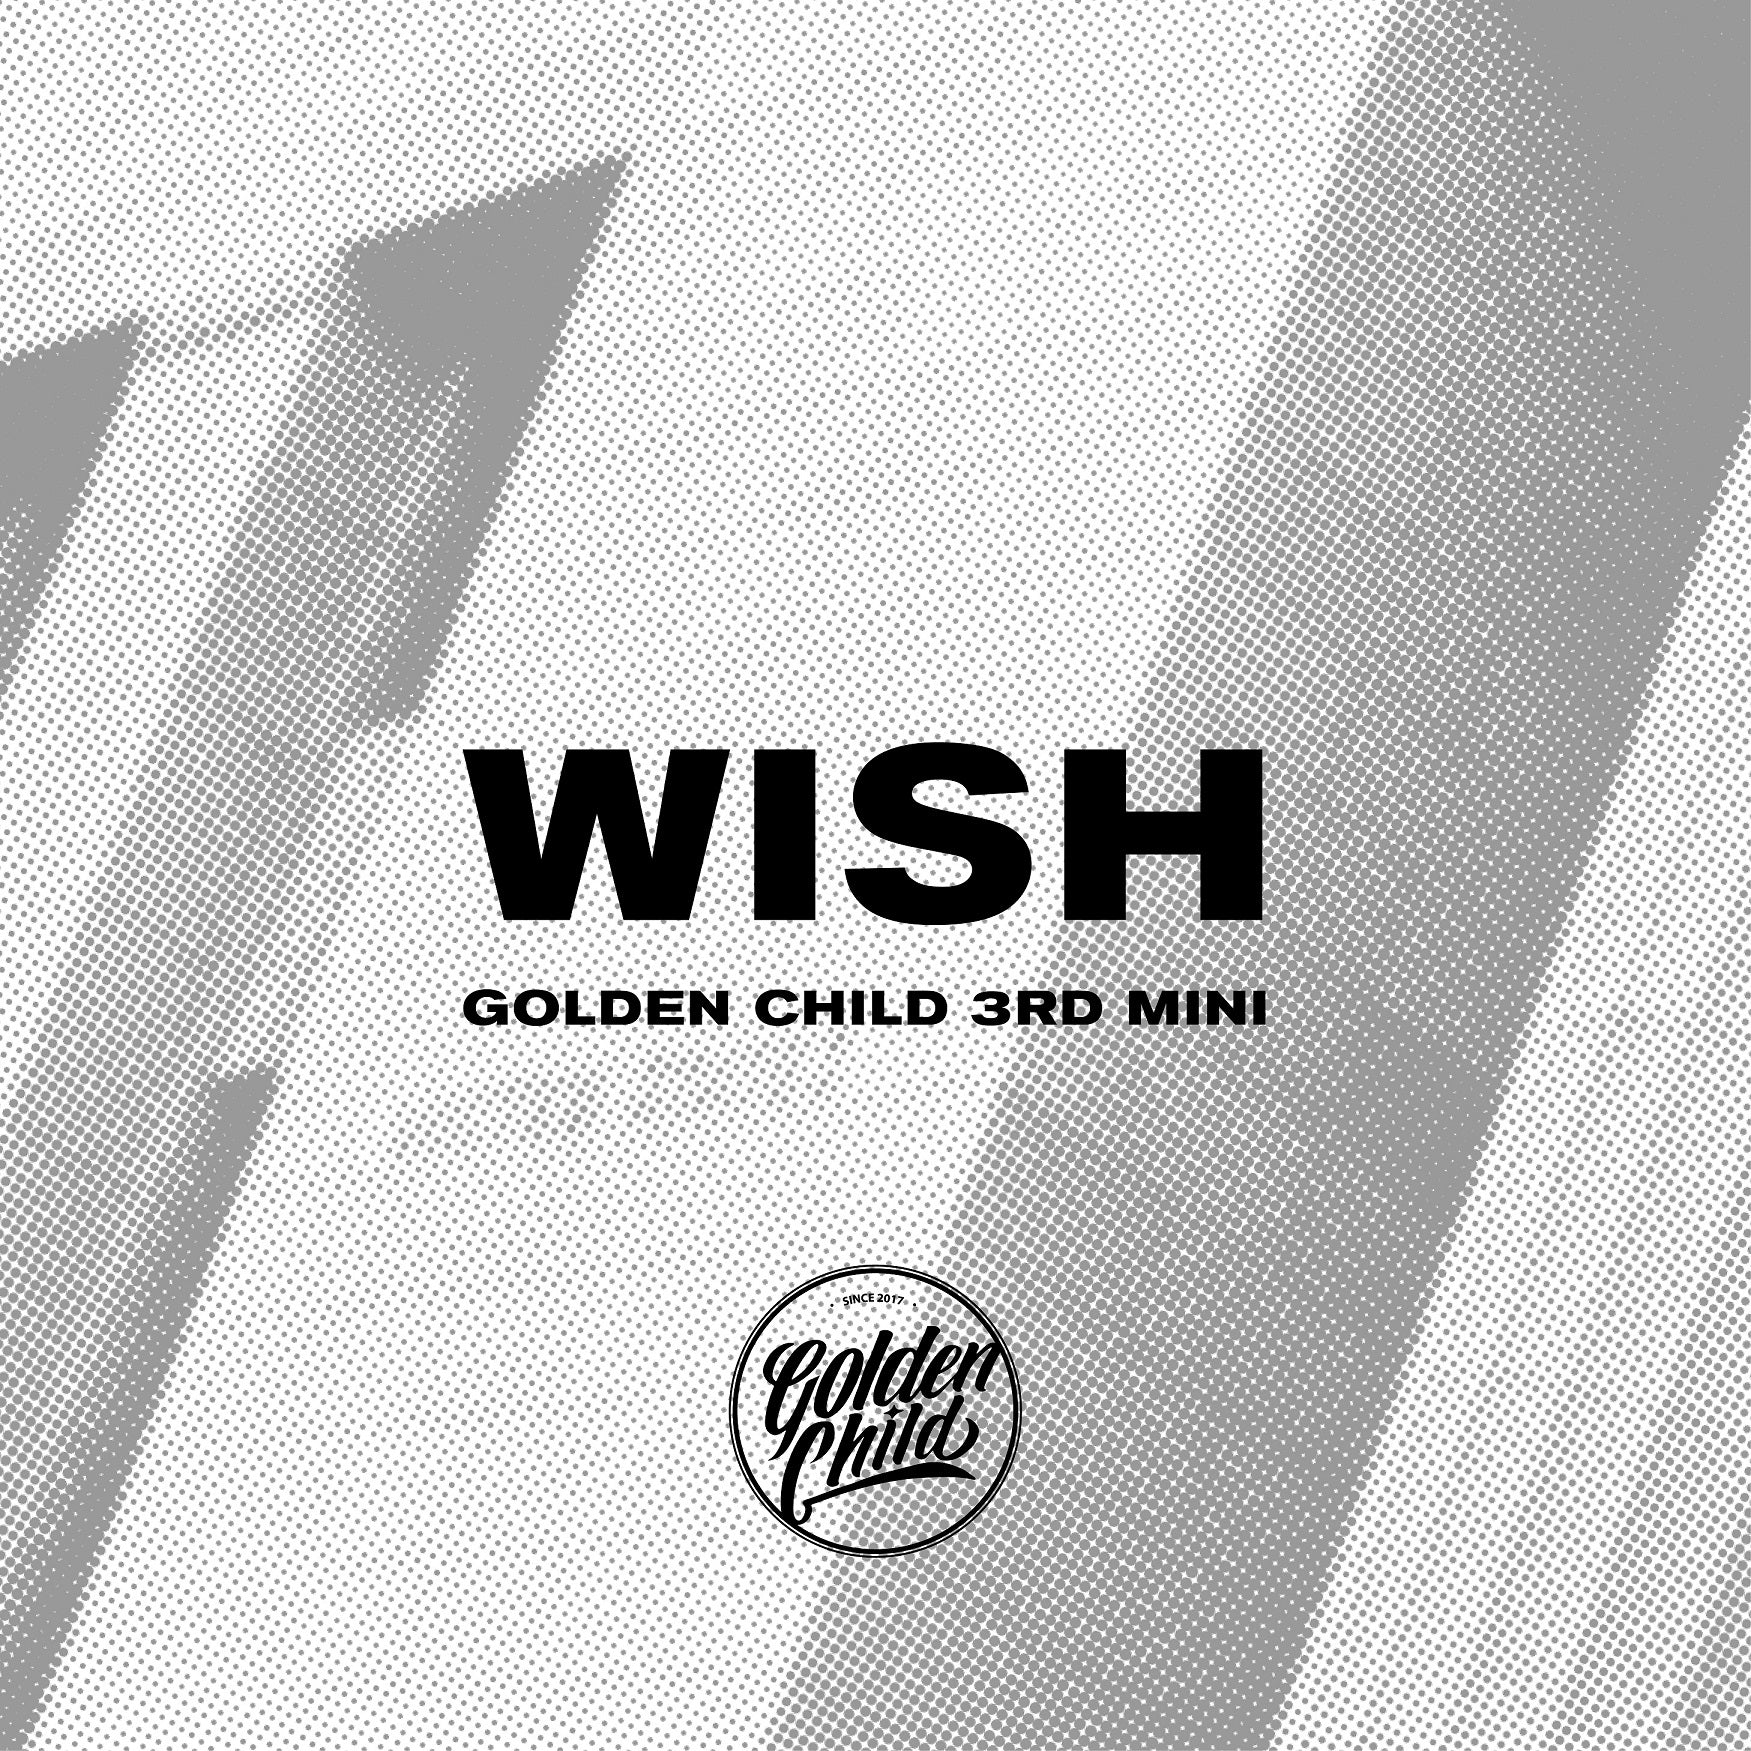 GOLDEN CHILD 3RD MINI ALBUM 'WISH'